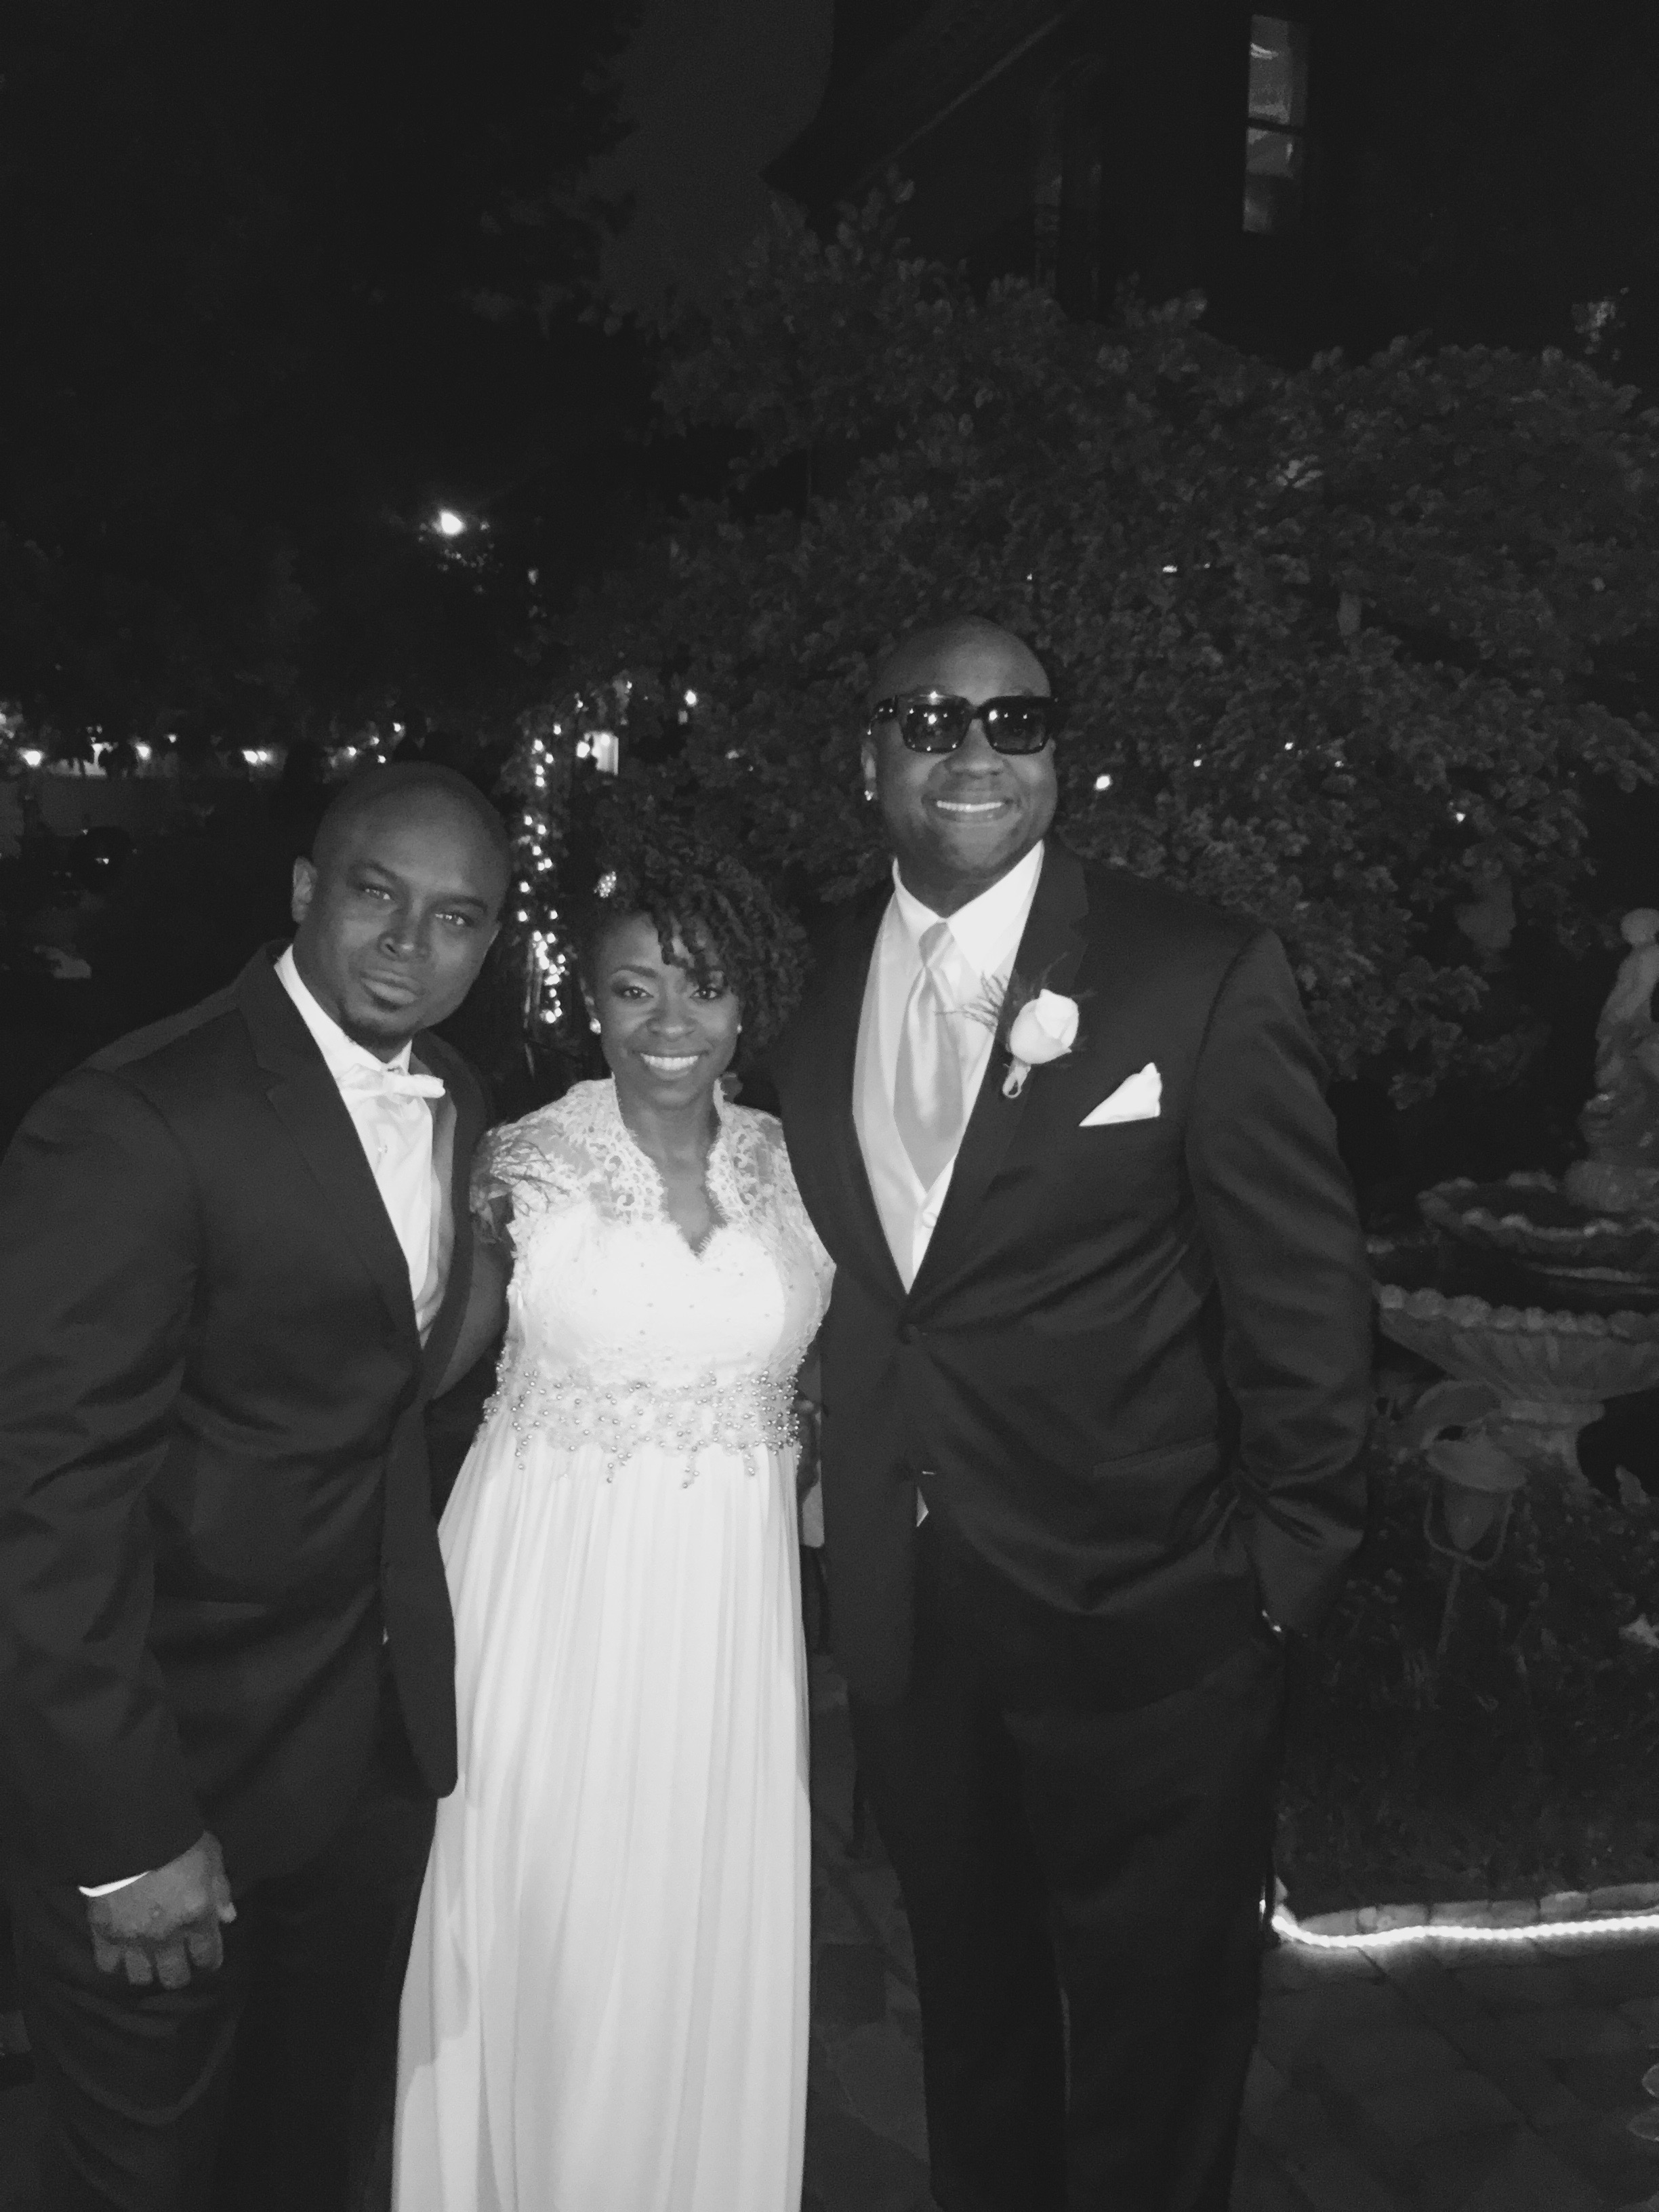 DJ D JONES CHICAGO BEST WEDDING BRIDE GROOM 012.jpg